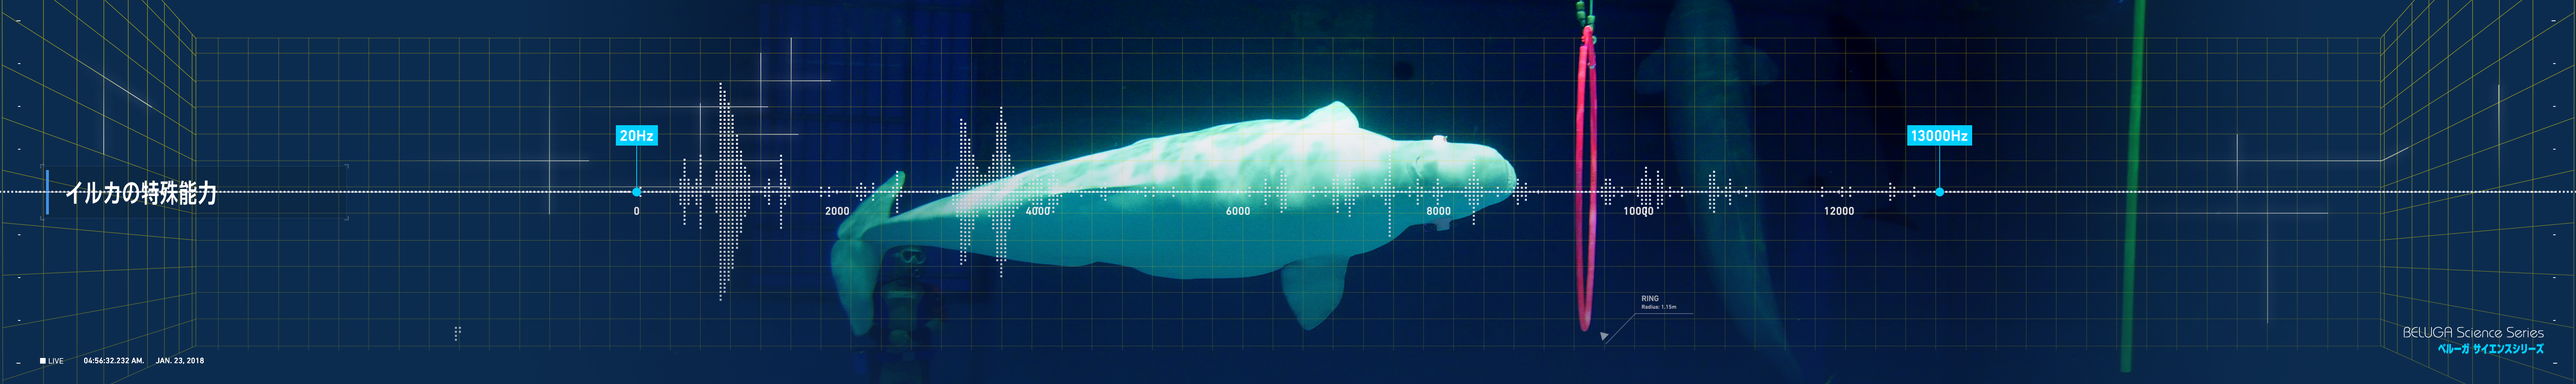 beluga_echolocation.png#asset:222